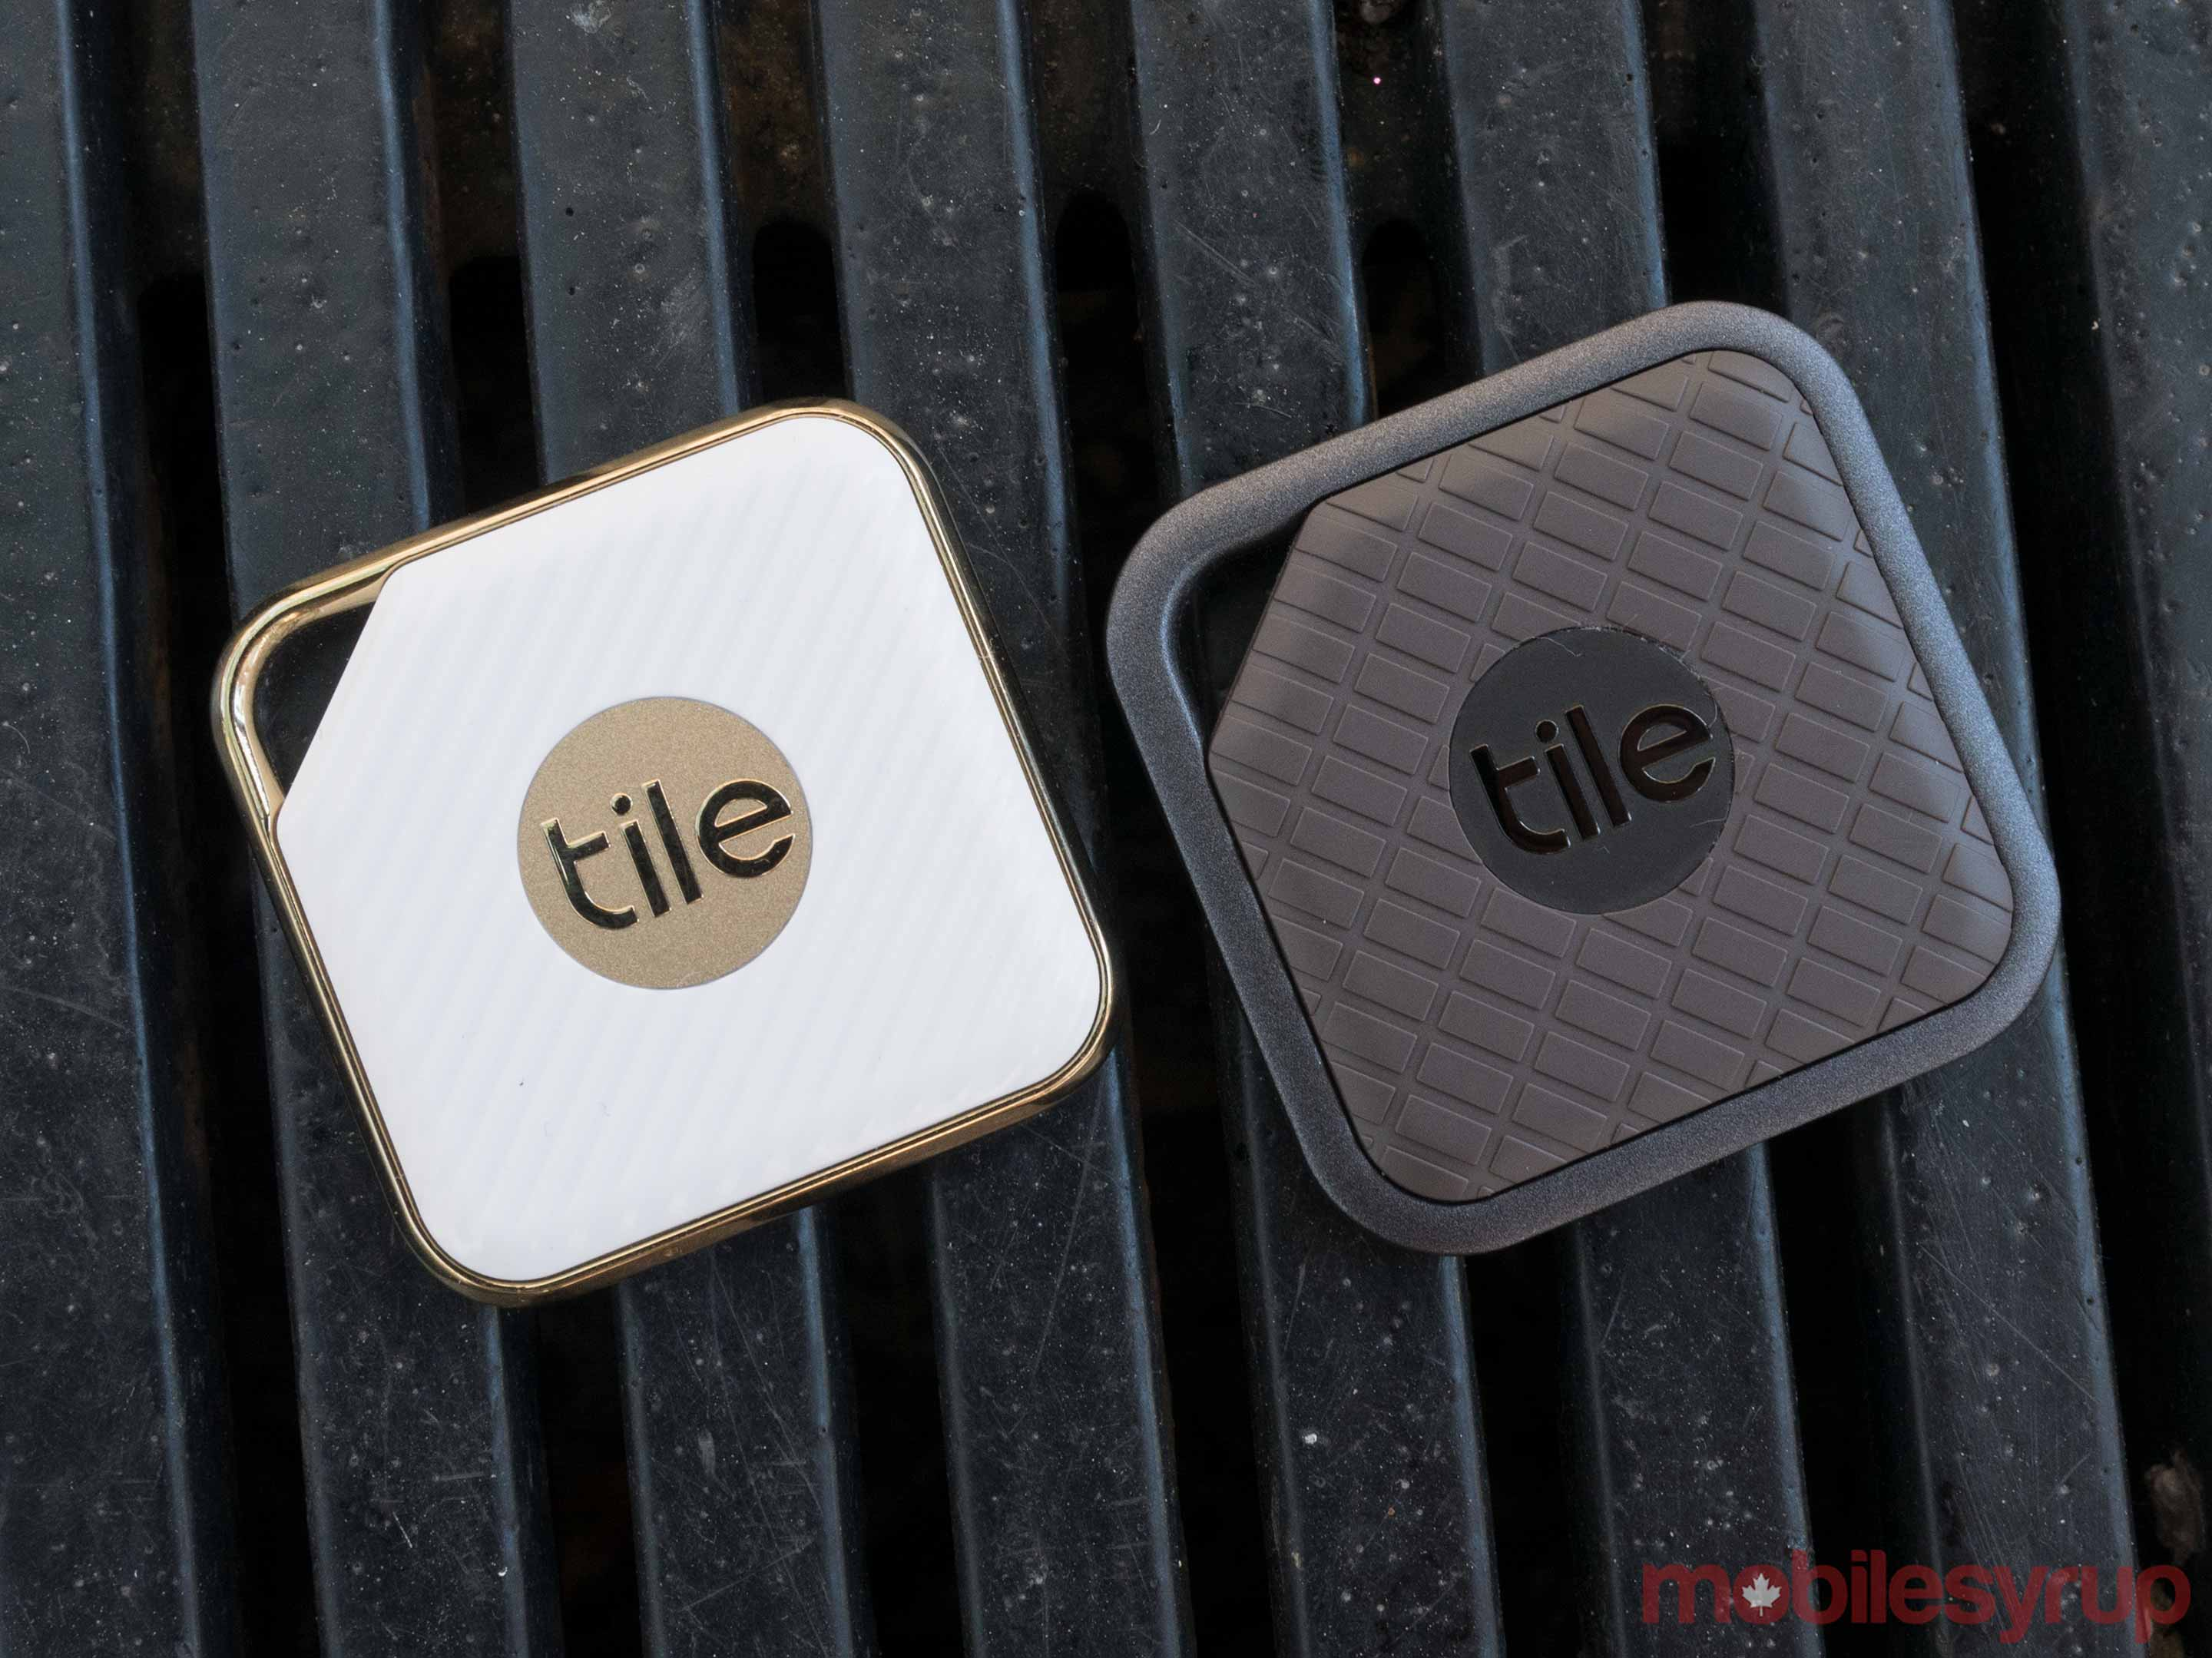 Tile Pro Style and Tile Style Sport